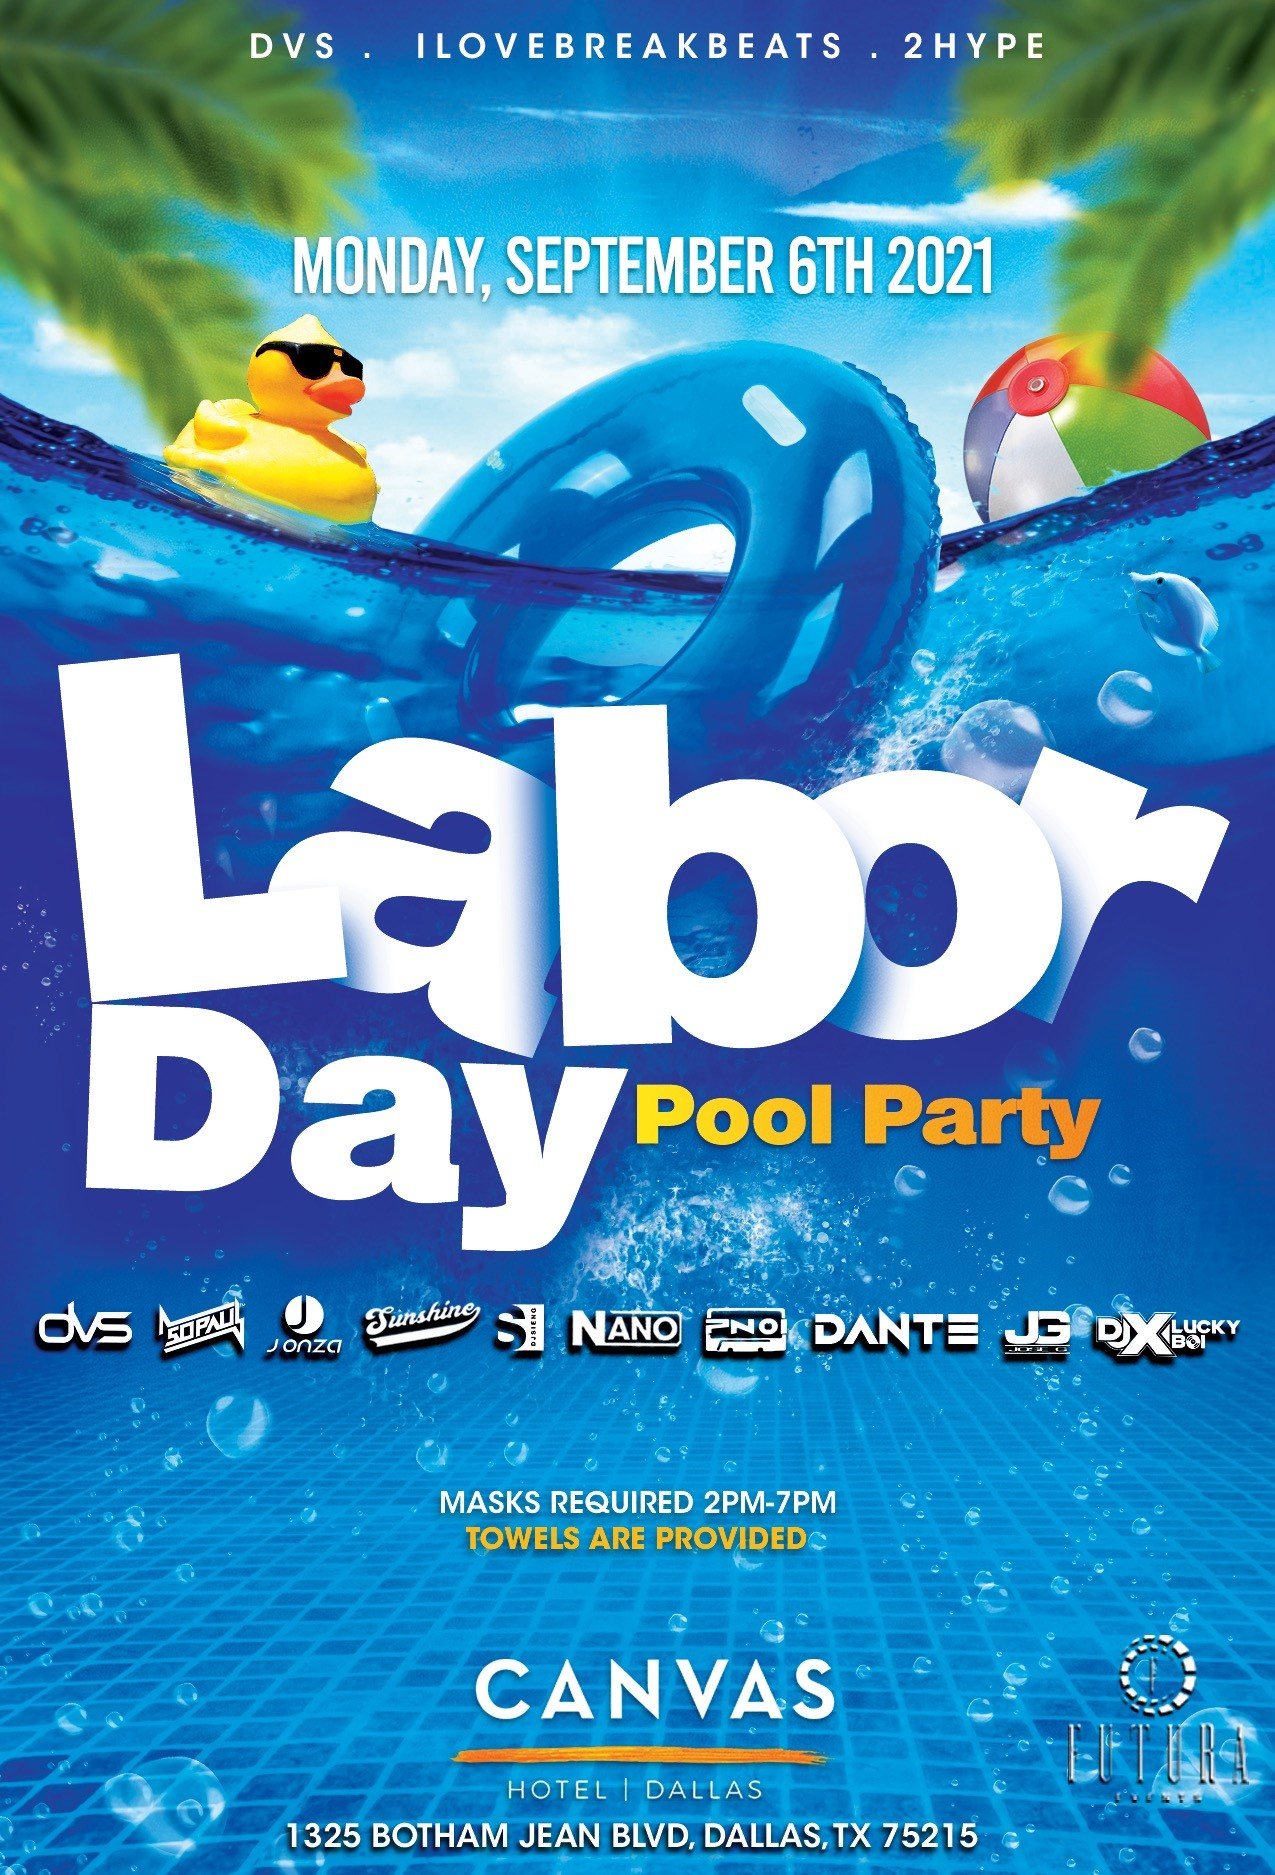 Labor Day Pool Party Flyer With Water and Logos